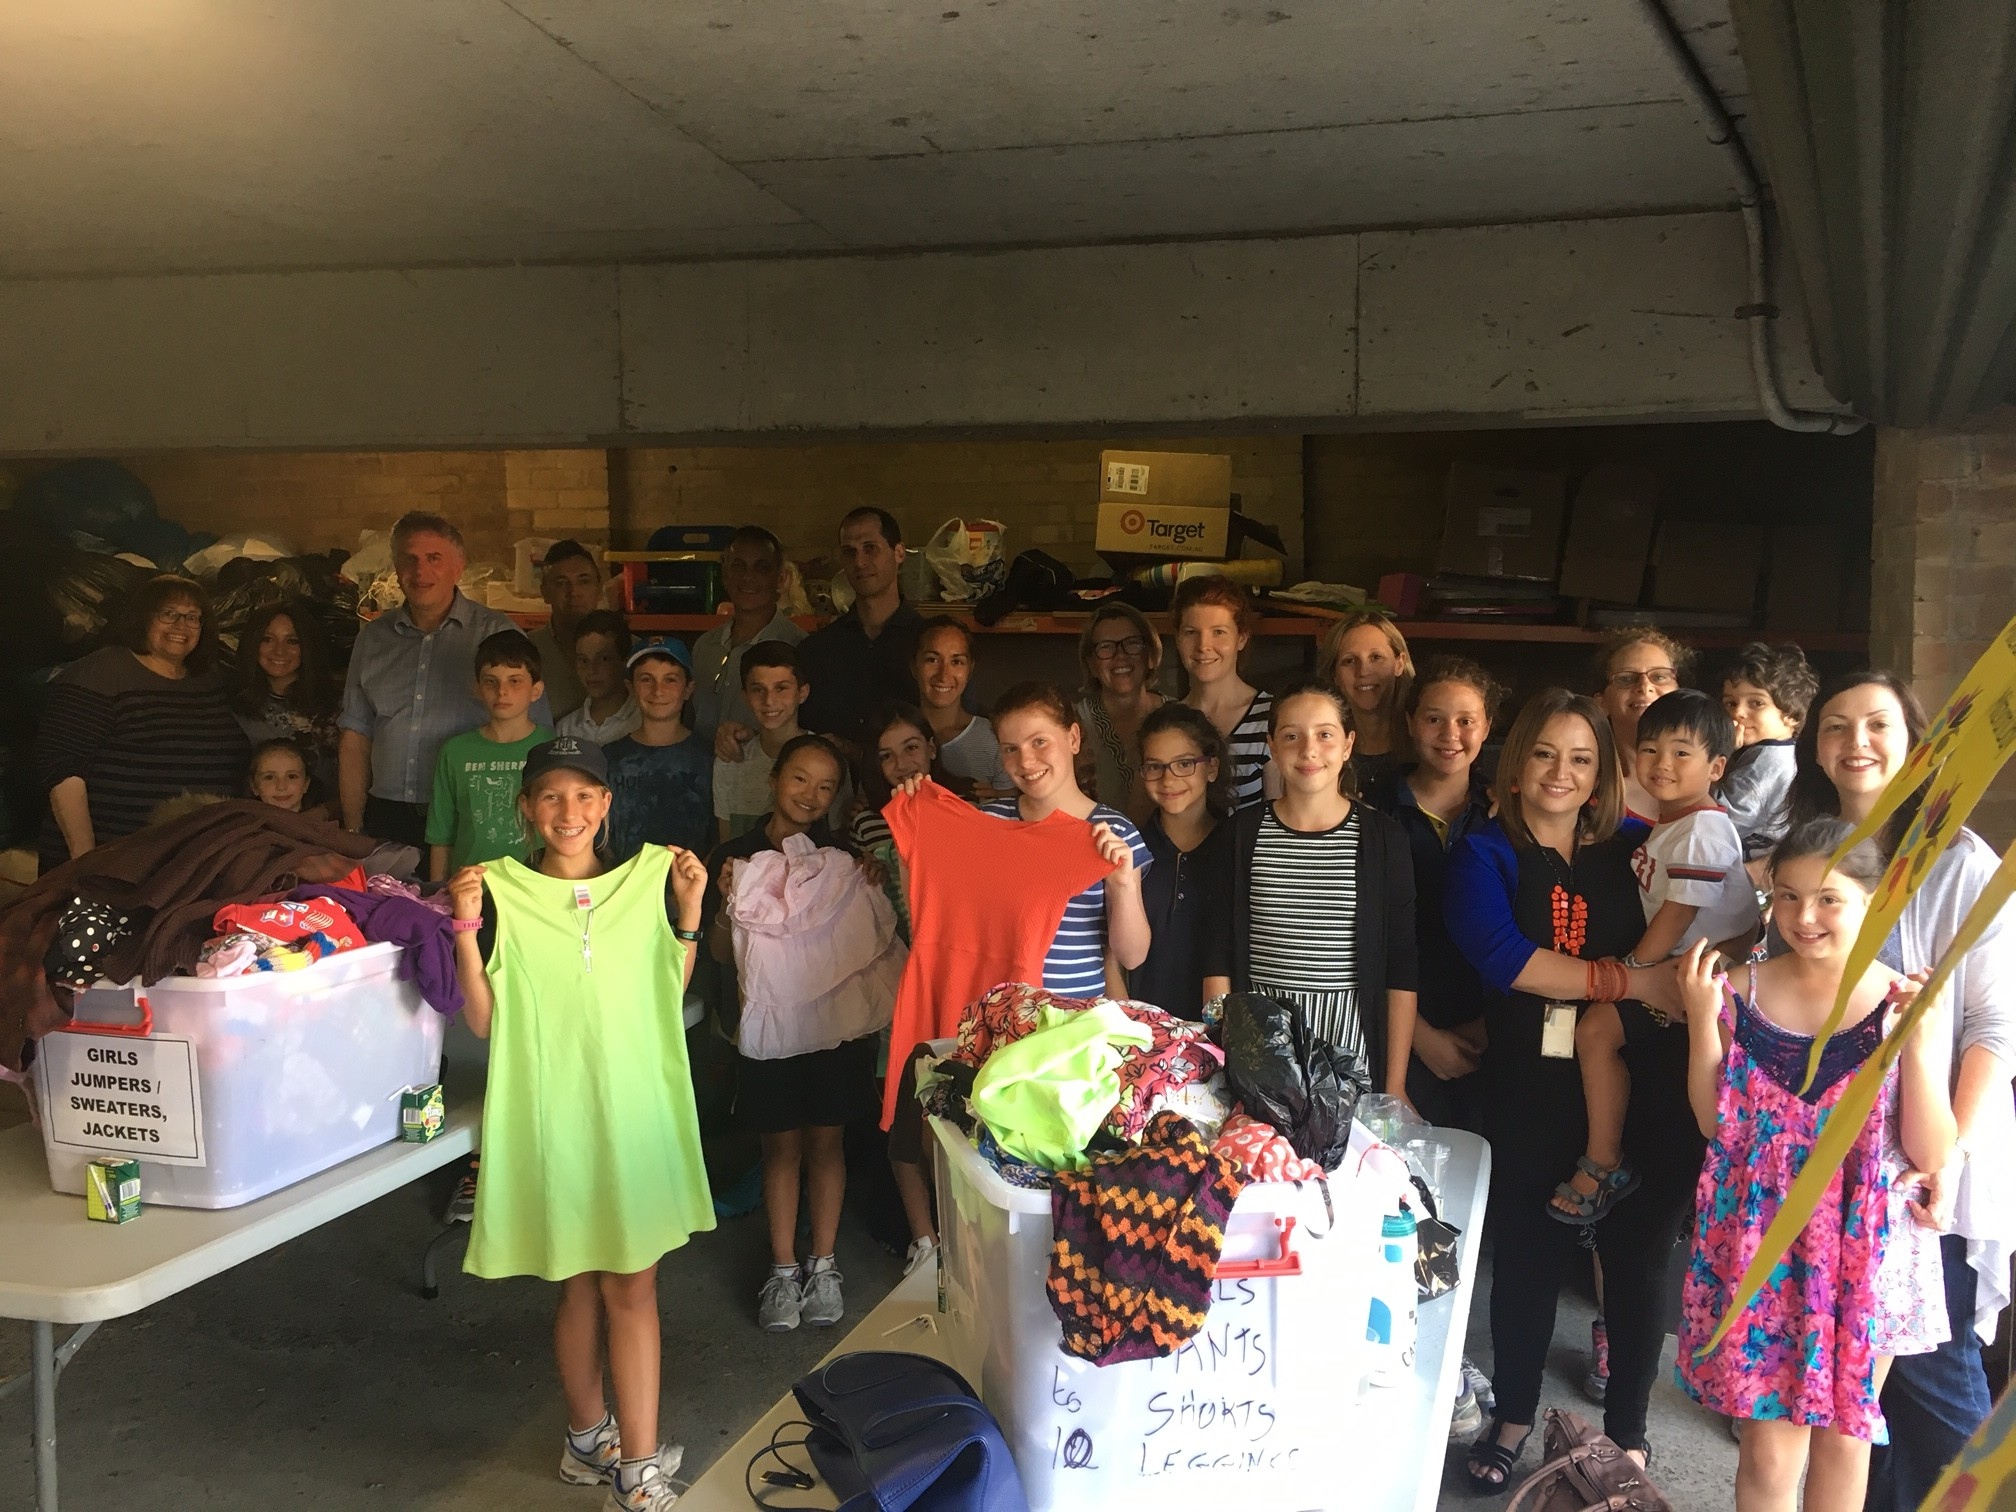 Bar/Bat mitzvah groups visited Mrs Markovits charity garage to sort clothes for the needy